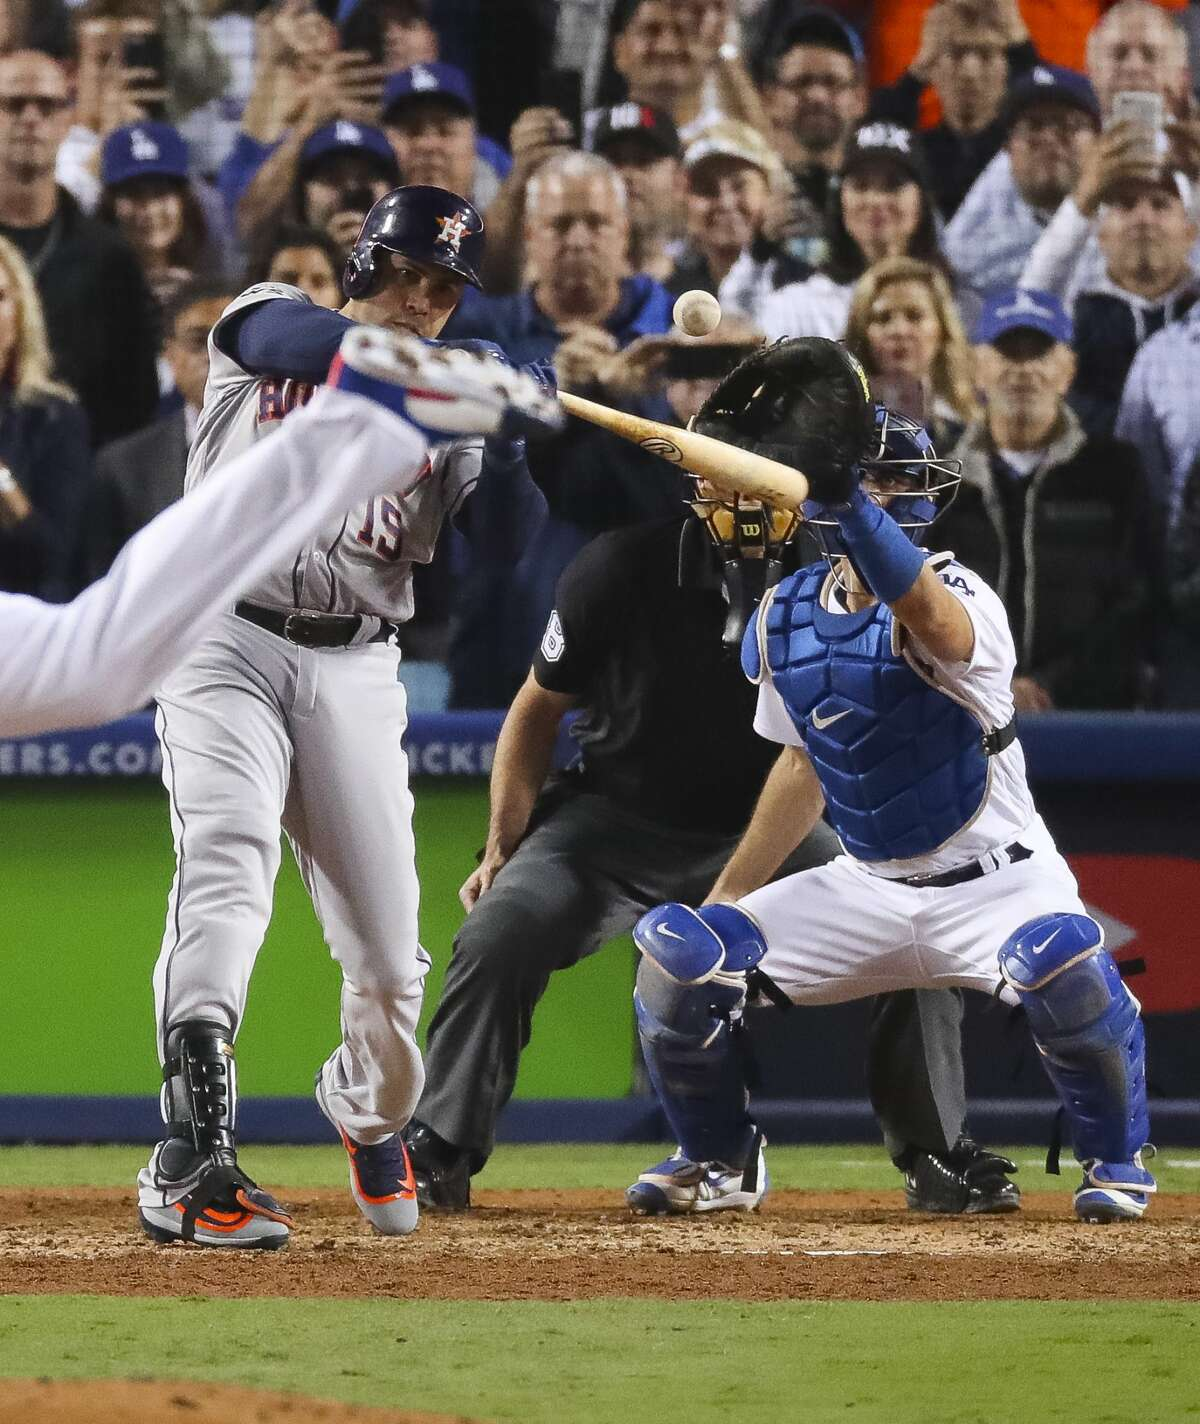 Houston Astros designated hitter Carlos Beltran (15) striking out to end Game 6 of the World Series at Dodger Stadium on Tuesday, Oct. 31, 2017, in Los Angeles.